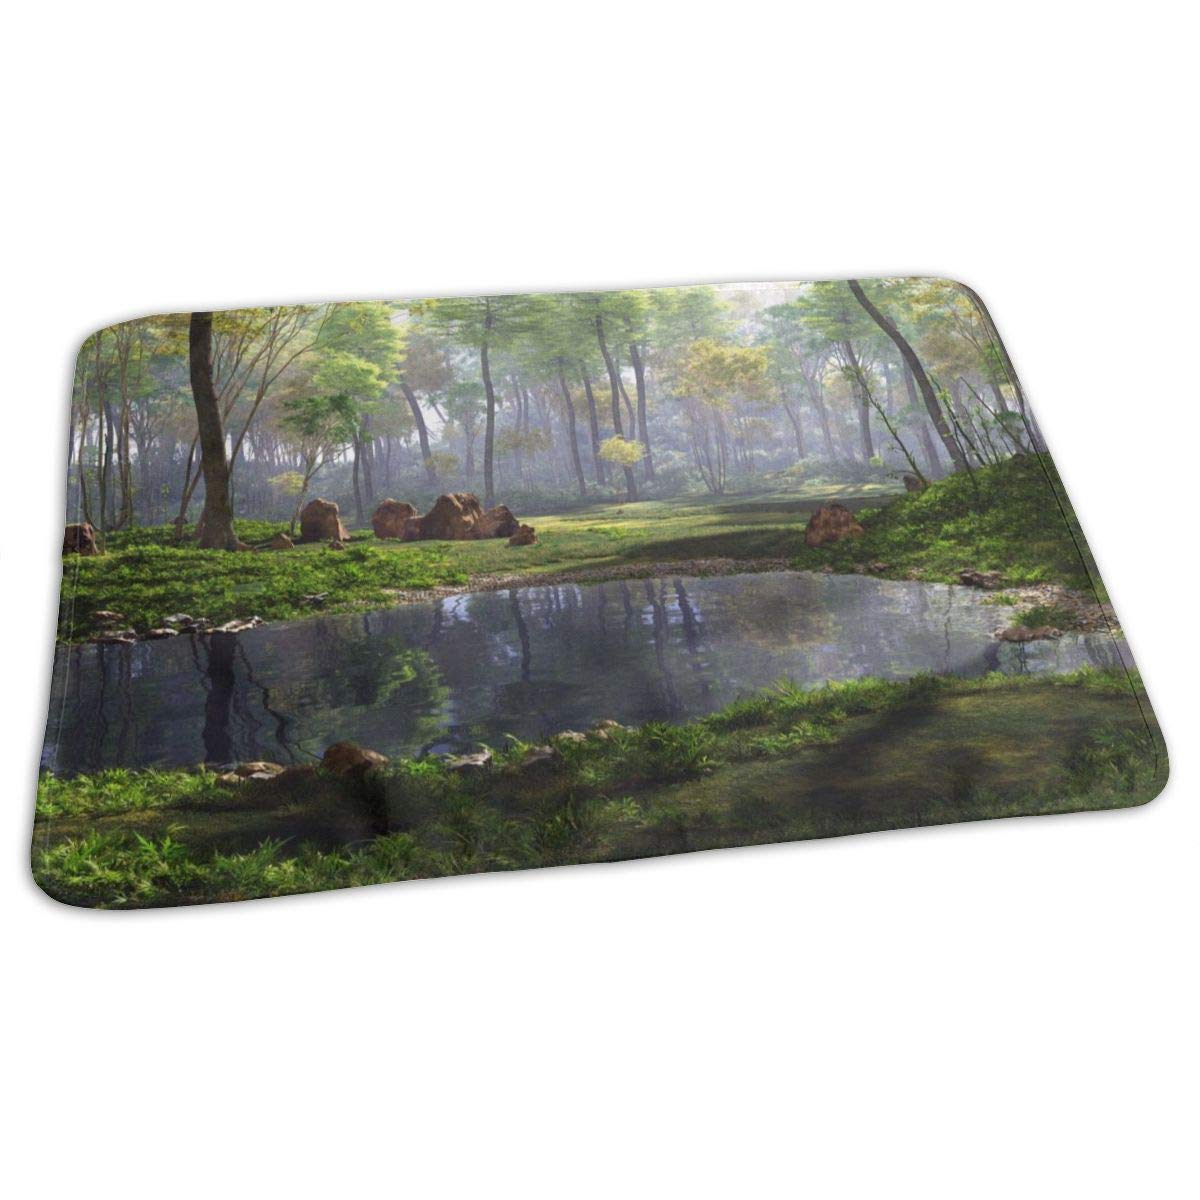 Osvbs Lovely Baby Reusable Waterproof Portable 3D Rendering of A Fantasy Forest Landscape Changing Pad Home Travel 27.5''x19.7'' by Osvbs